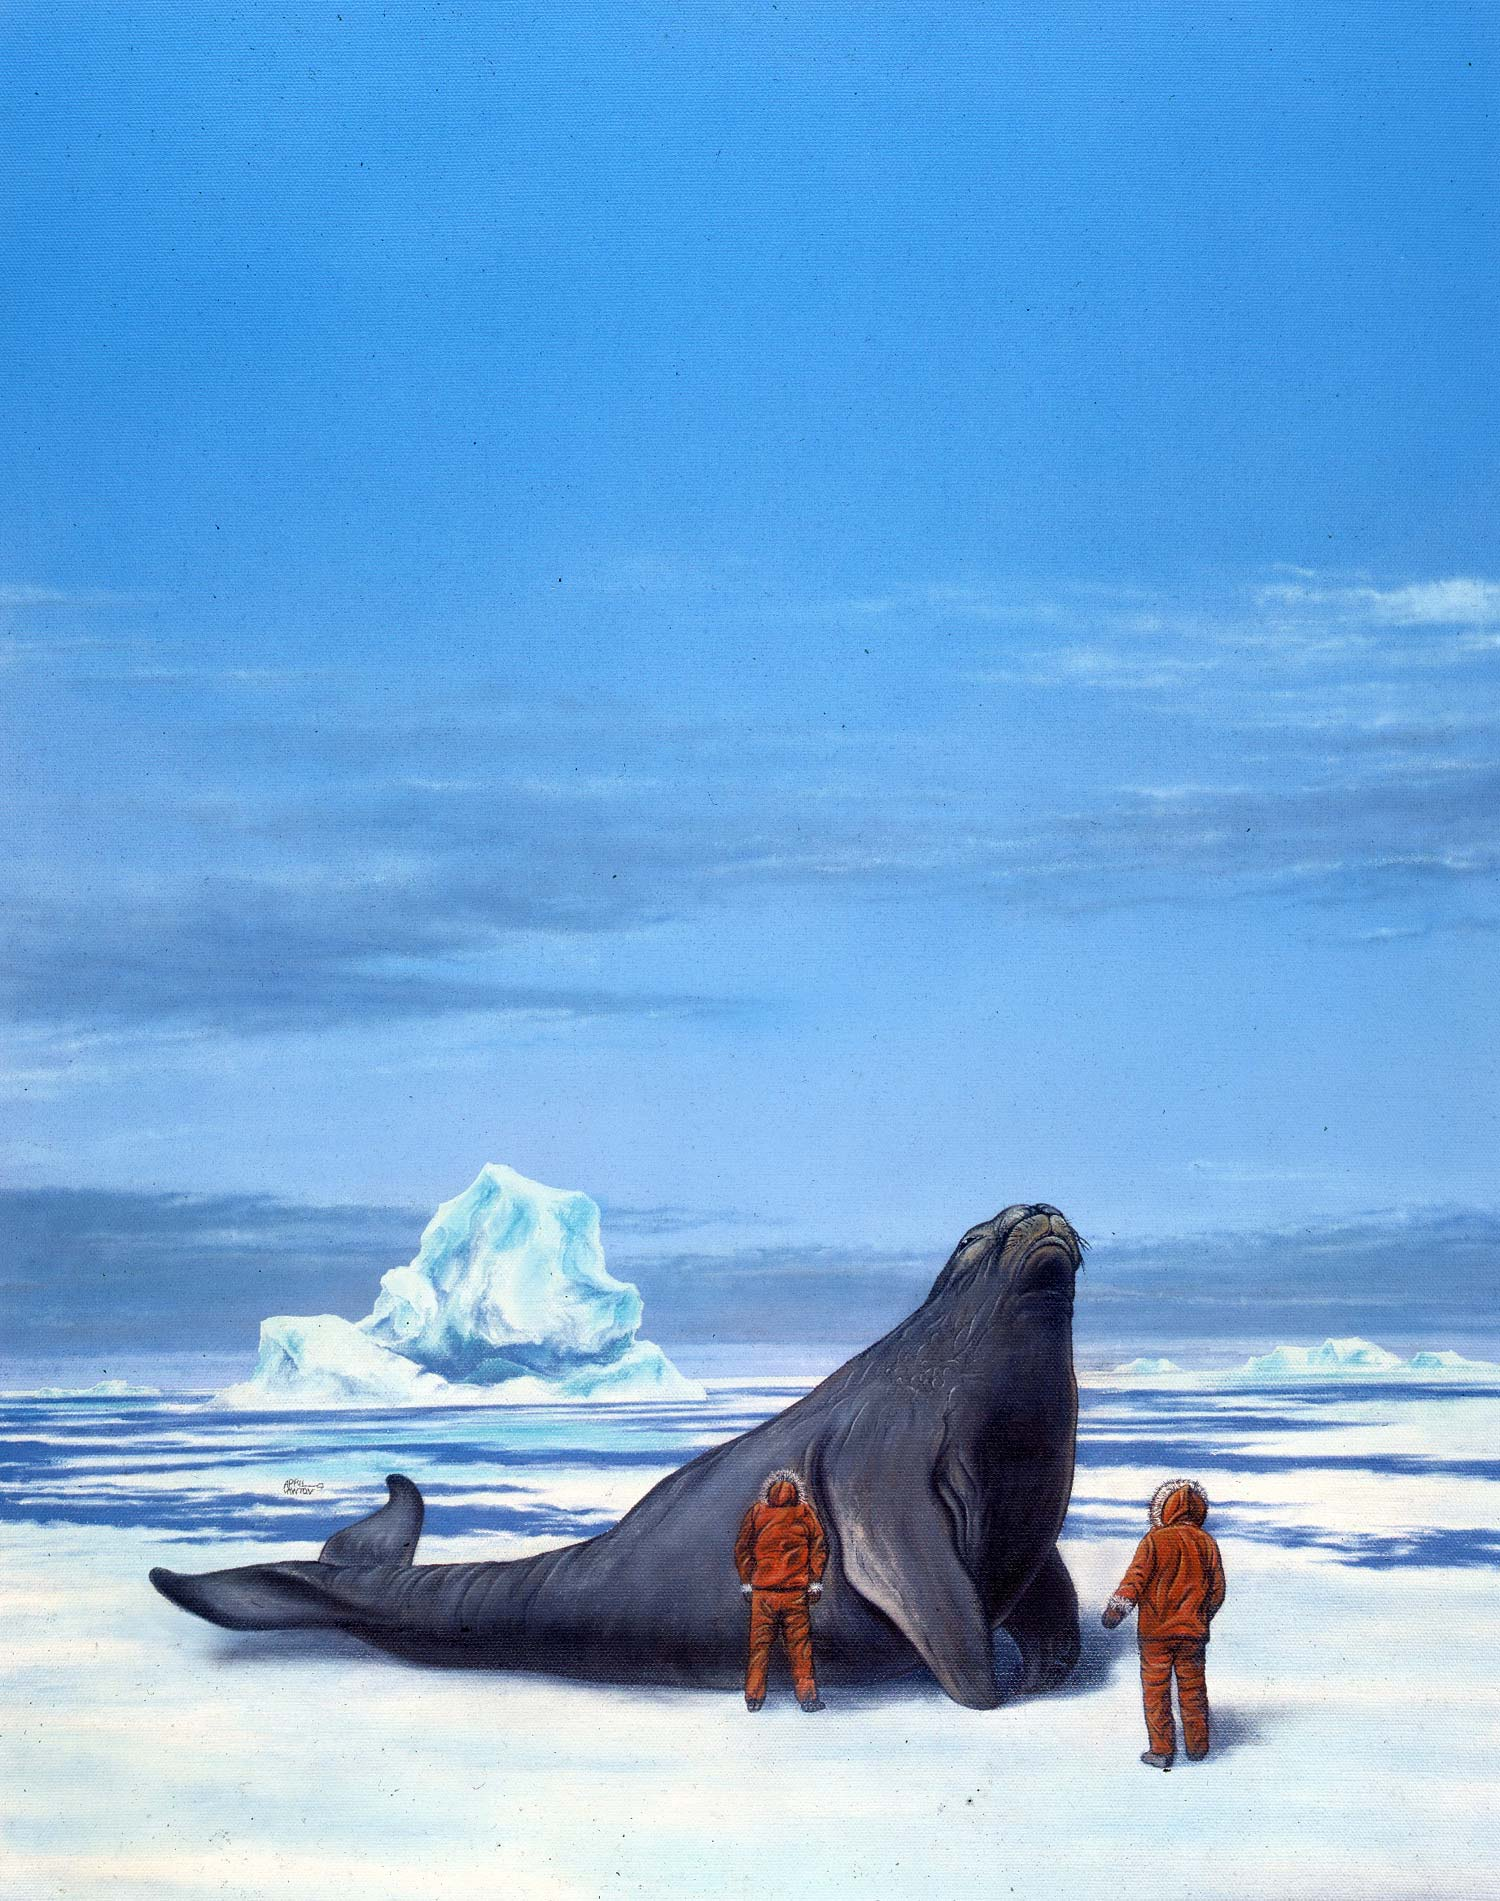 Steller's Sea Cow by April Lawton